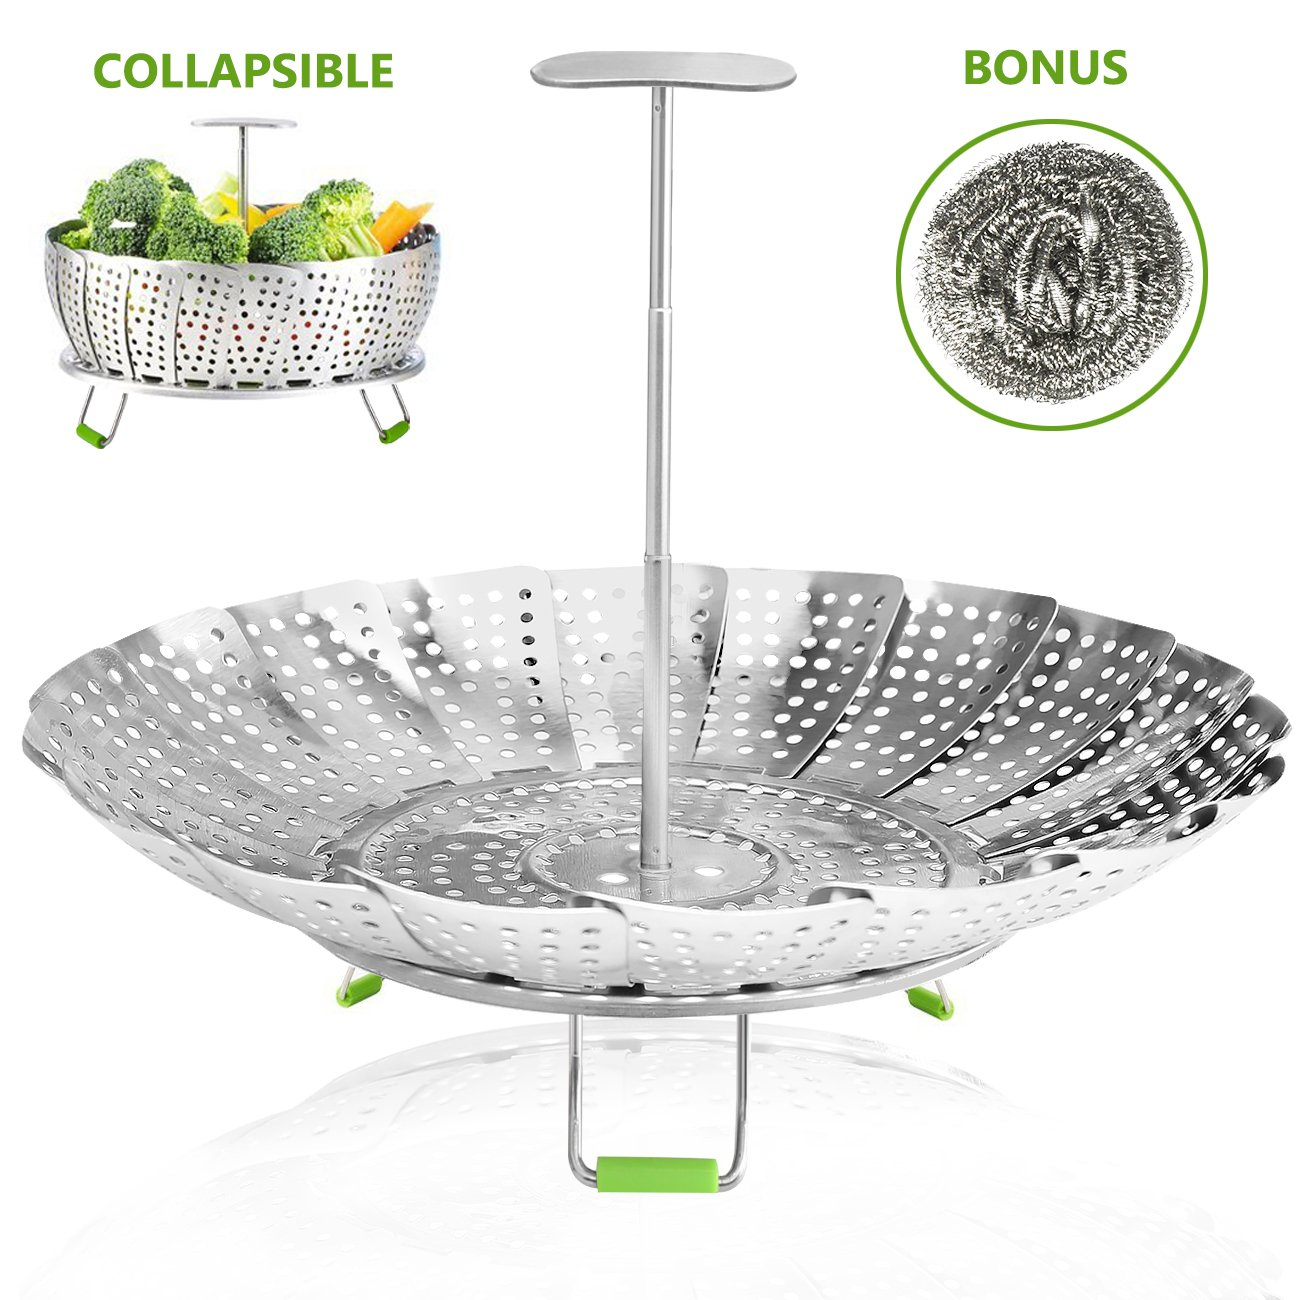 Vegetable Steamer Basket Stainless Steel Collapsible Steamer Insert for Steaming Veggie Food Seafood Cooking, Metal Handle Foldable Legs, Fit Various Pot Pressure Cooker (5.3 to 9) Consevisen